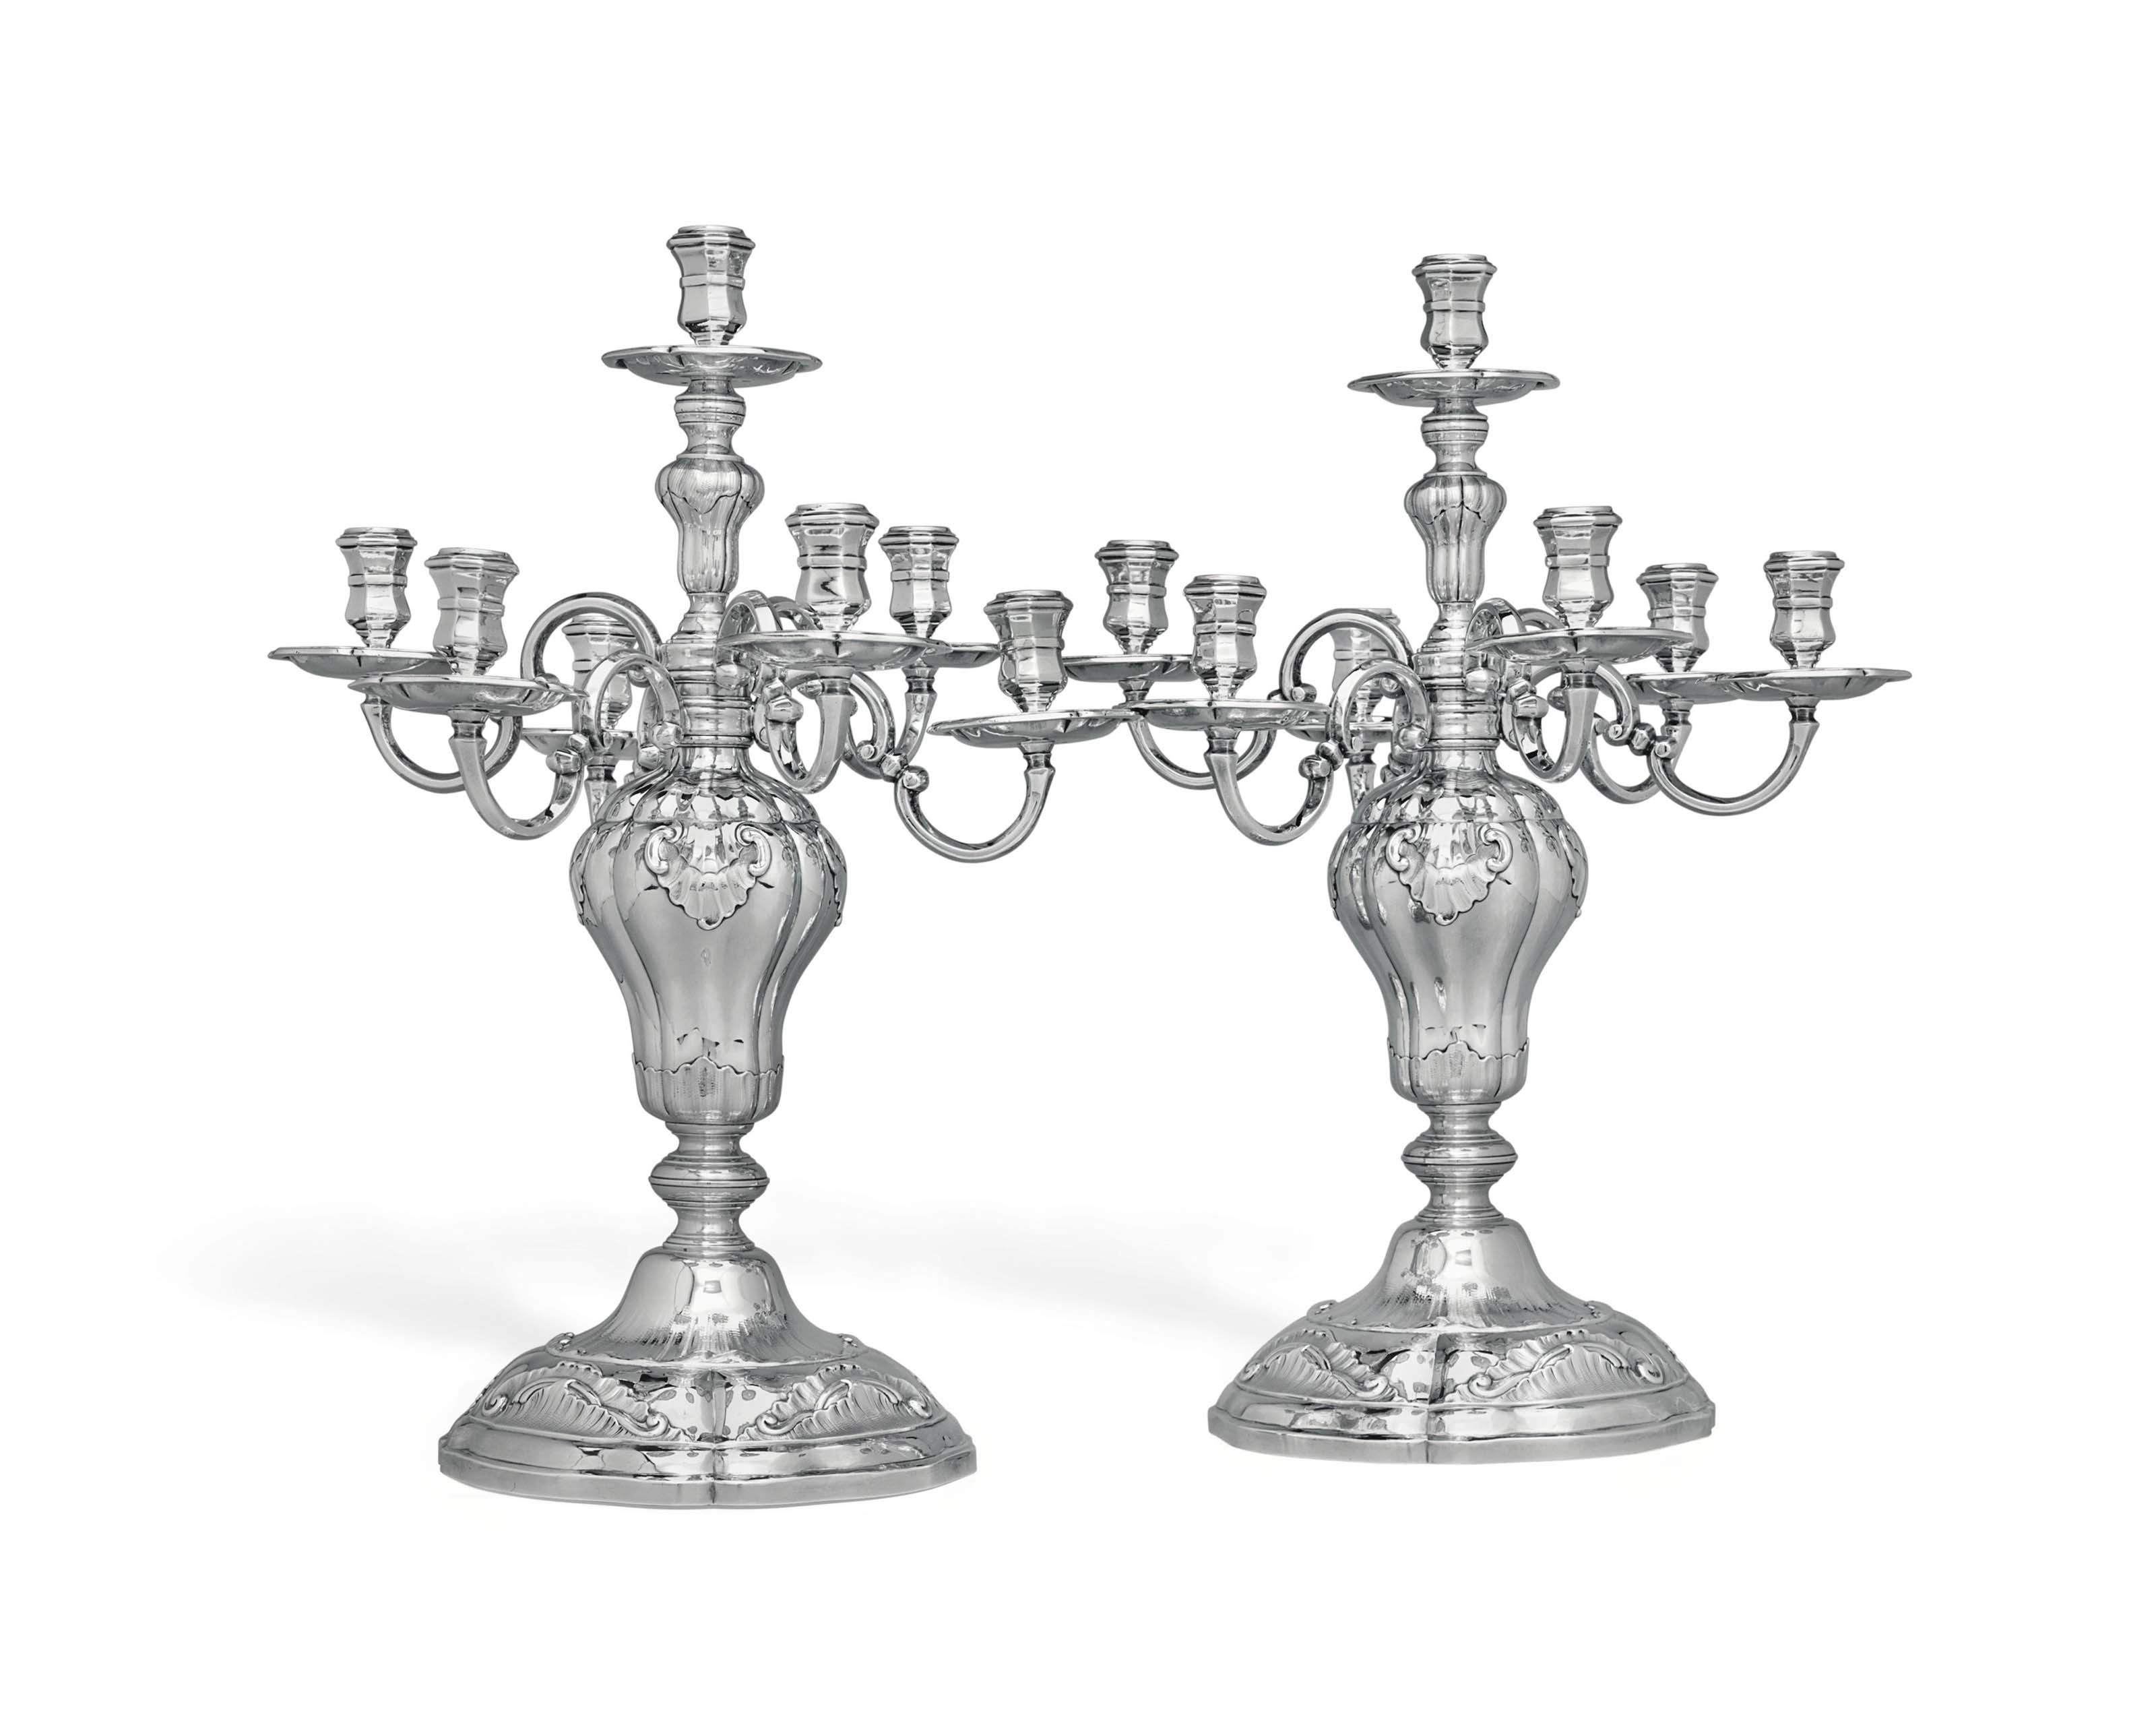 A PAIR OF DANISH SILVER SEVEN-LIGHT CANDELABRA